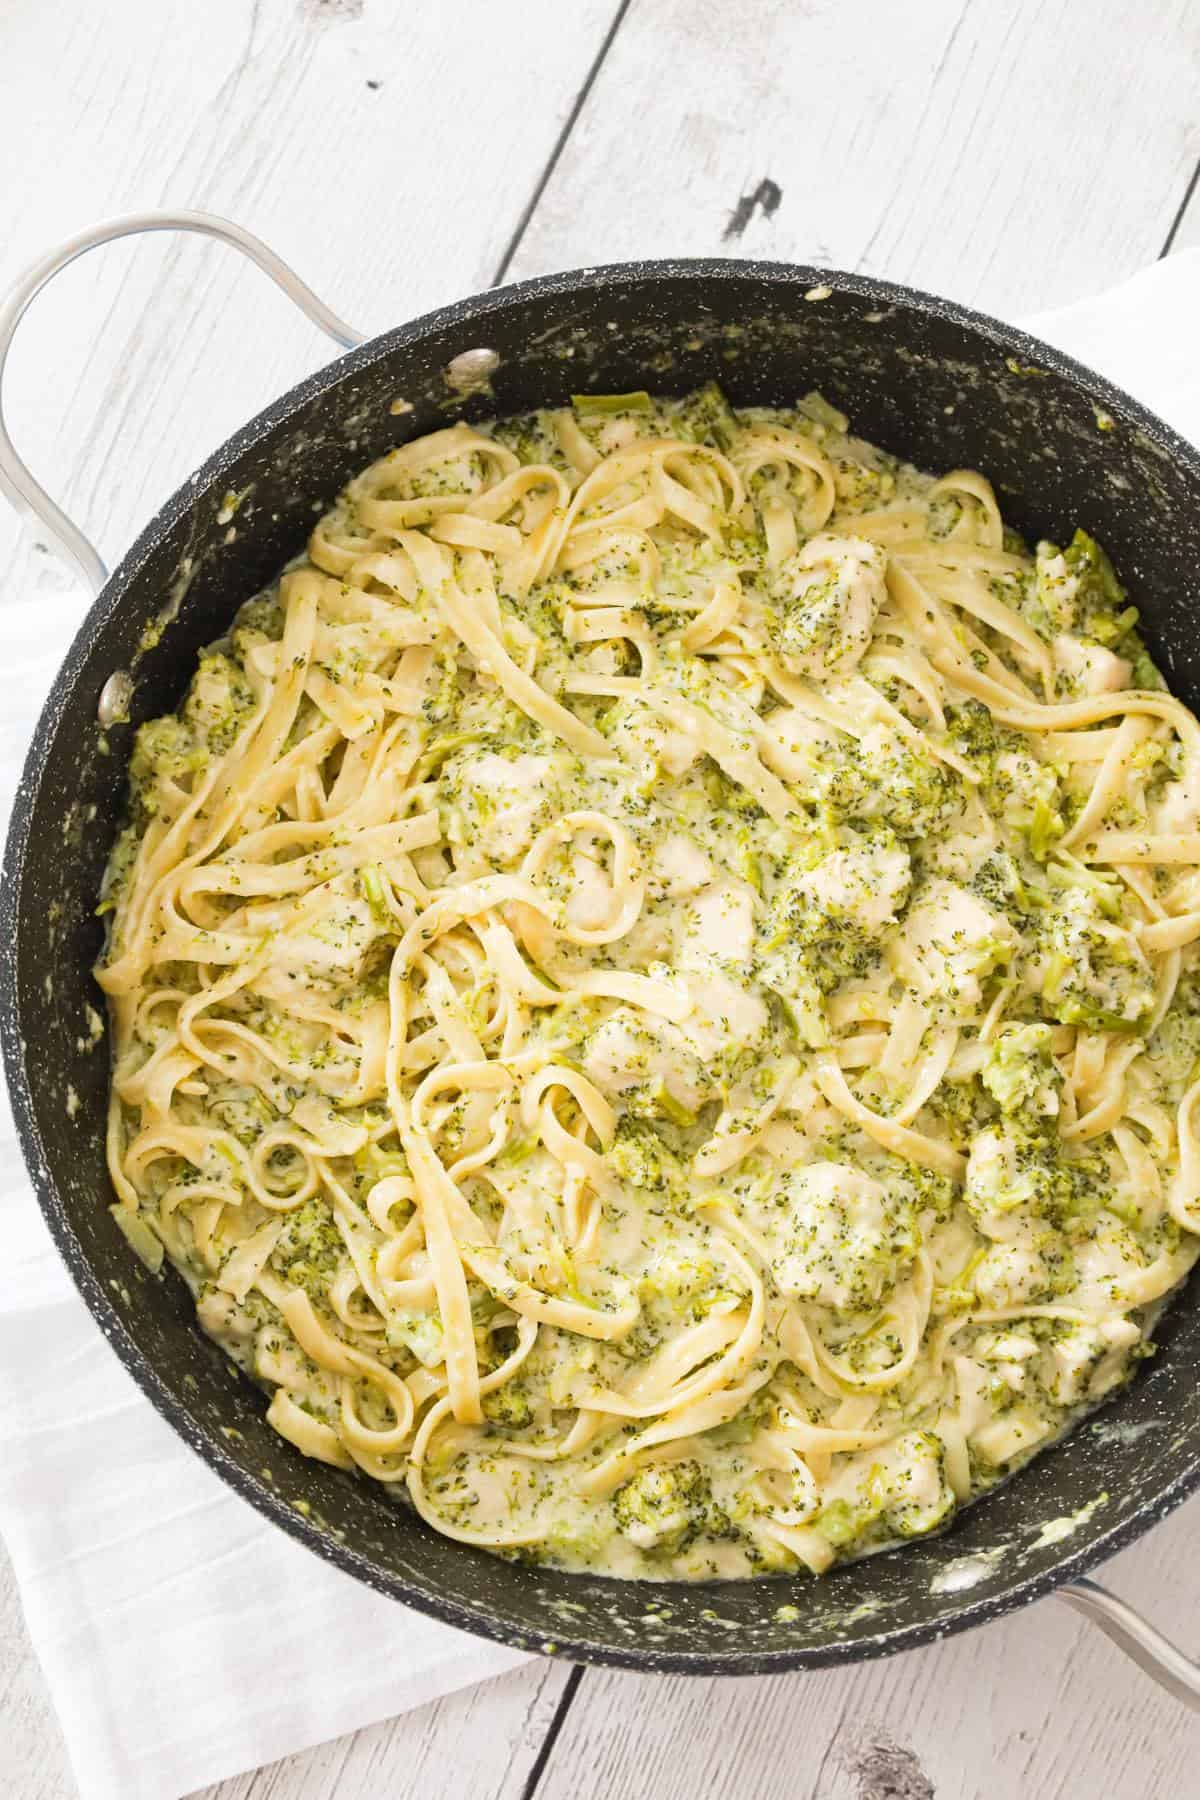 Chicken Broccoli Alfredo is a creamy garlic pasta dish loaded with chicken breast chunks, broccoli and parmesan cheese.